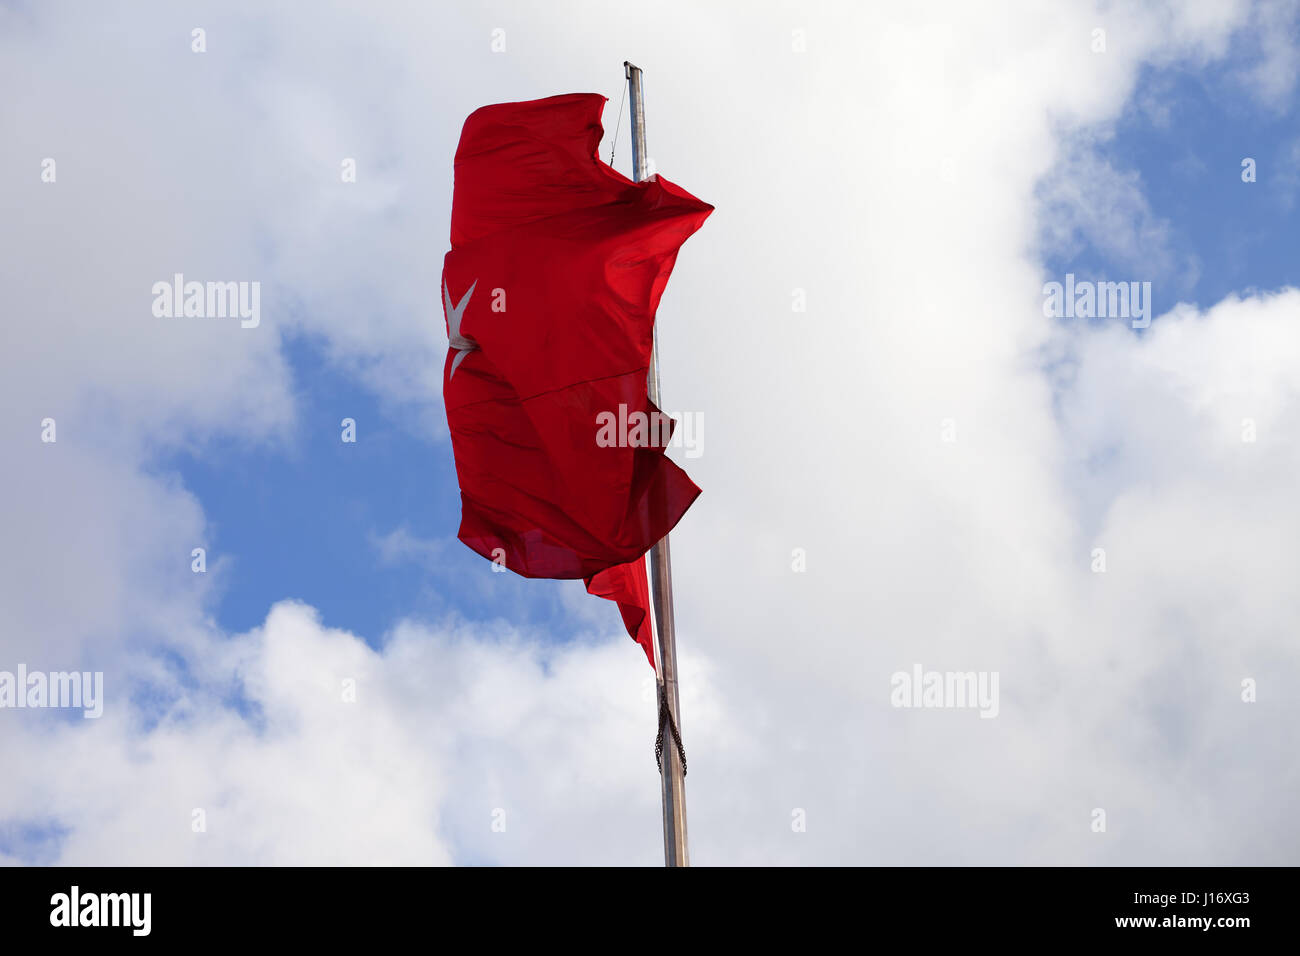 Turkish flag on flagpole waving in wind at sky with clouds - Stock Image